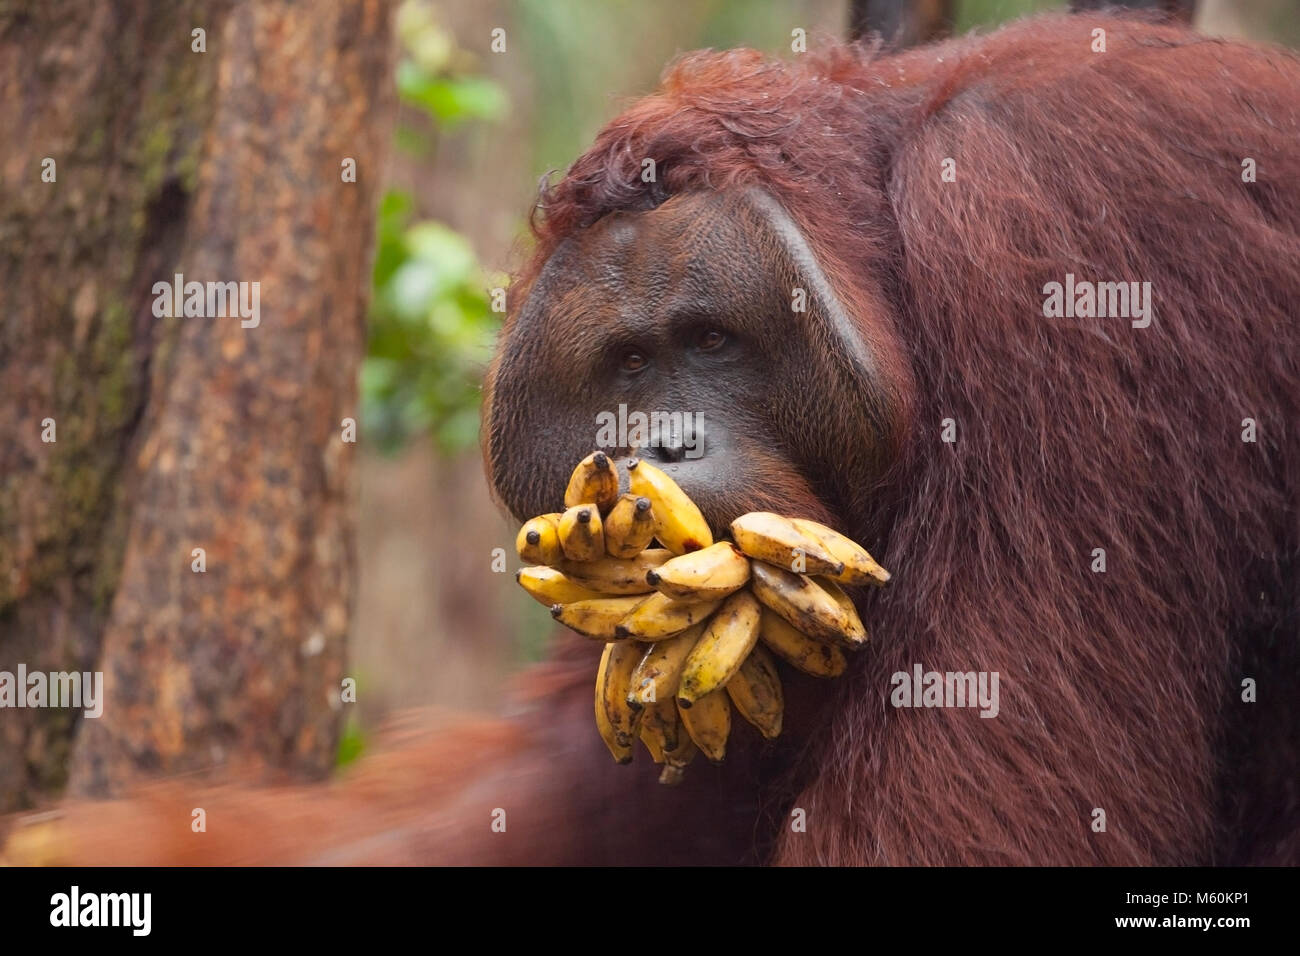 Wild orangutan dominant male (Pongo pygmaeus) with mouth stuffed full of bananas from Camp Leaking feeding station - Stock Image